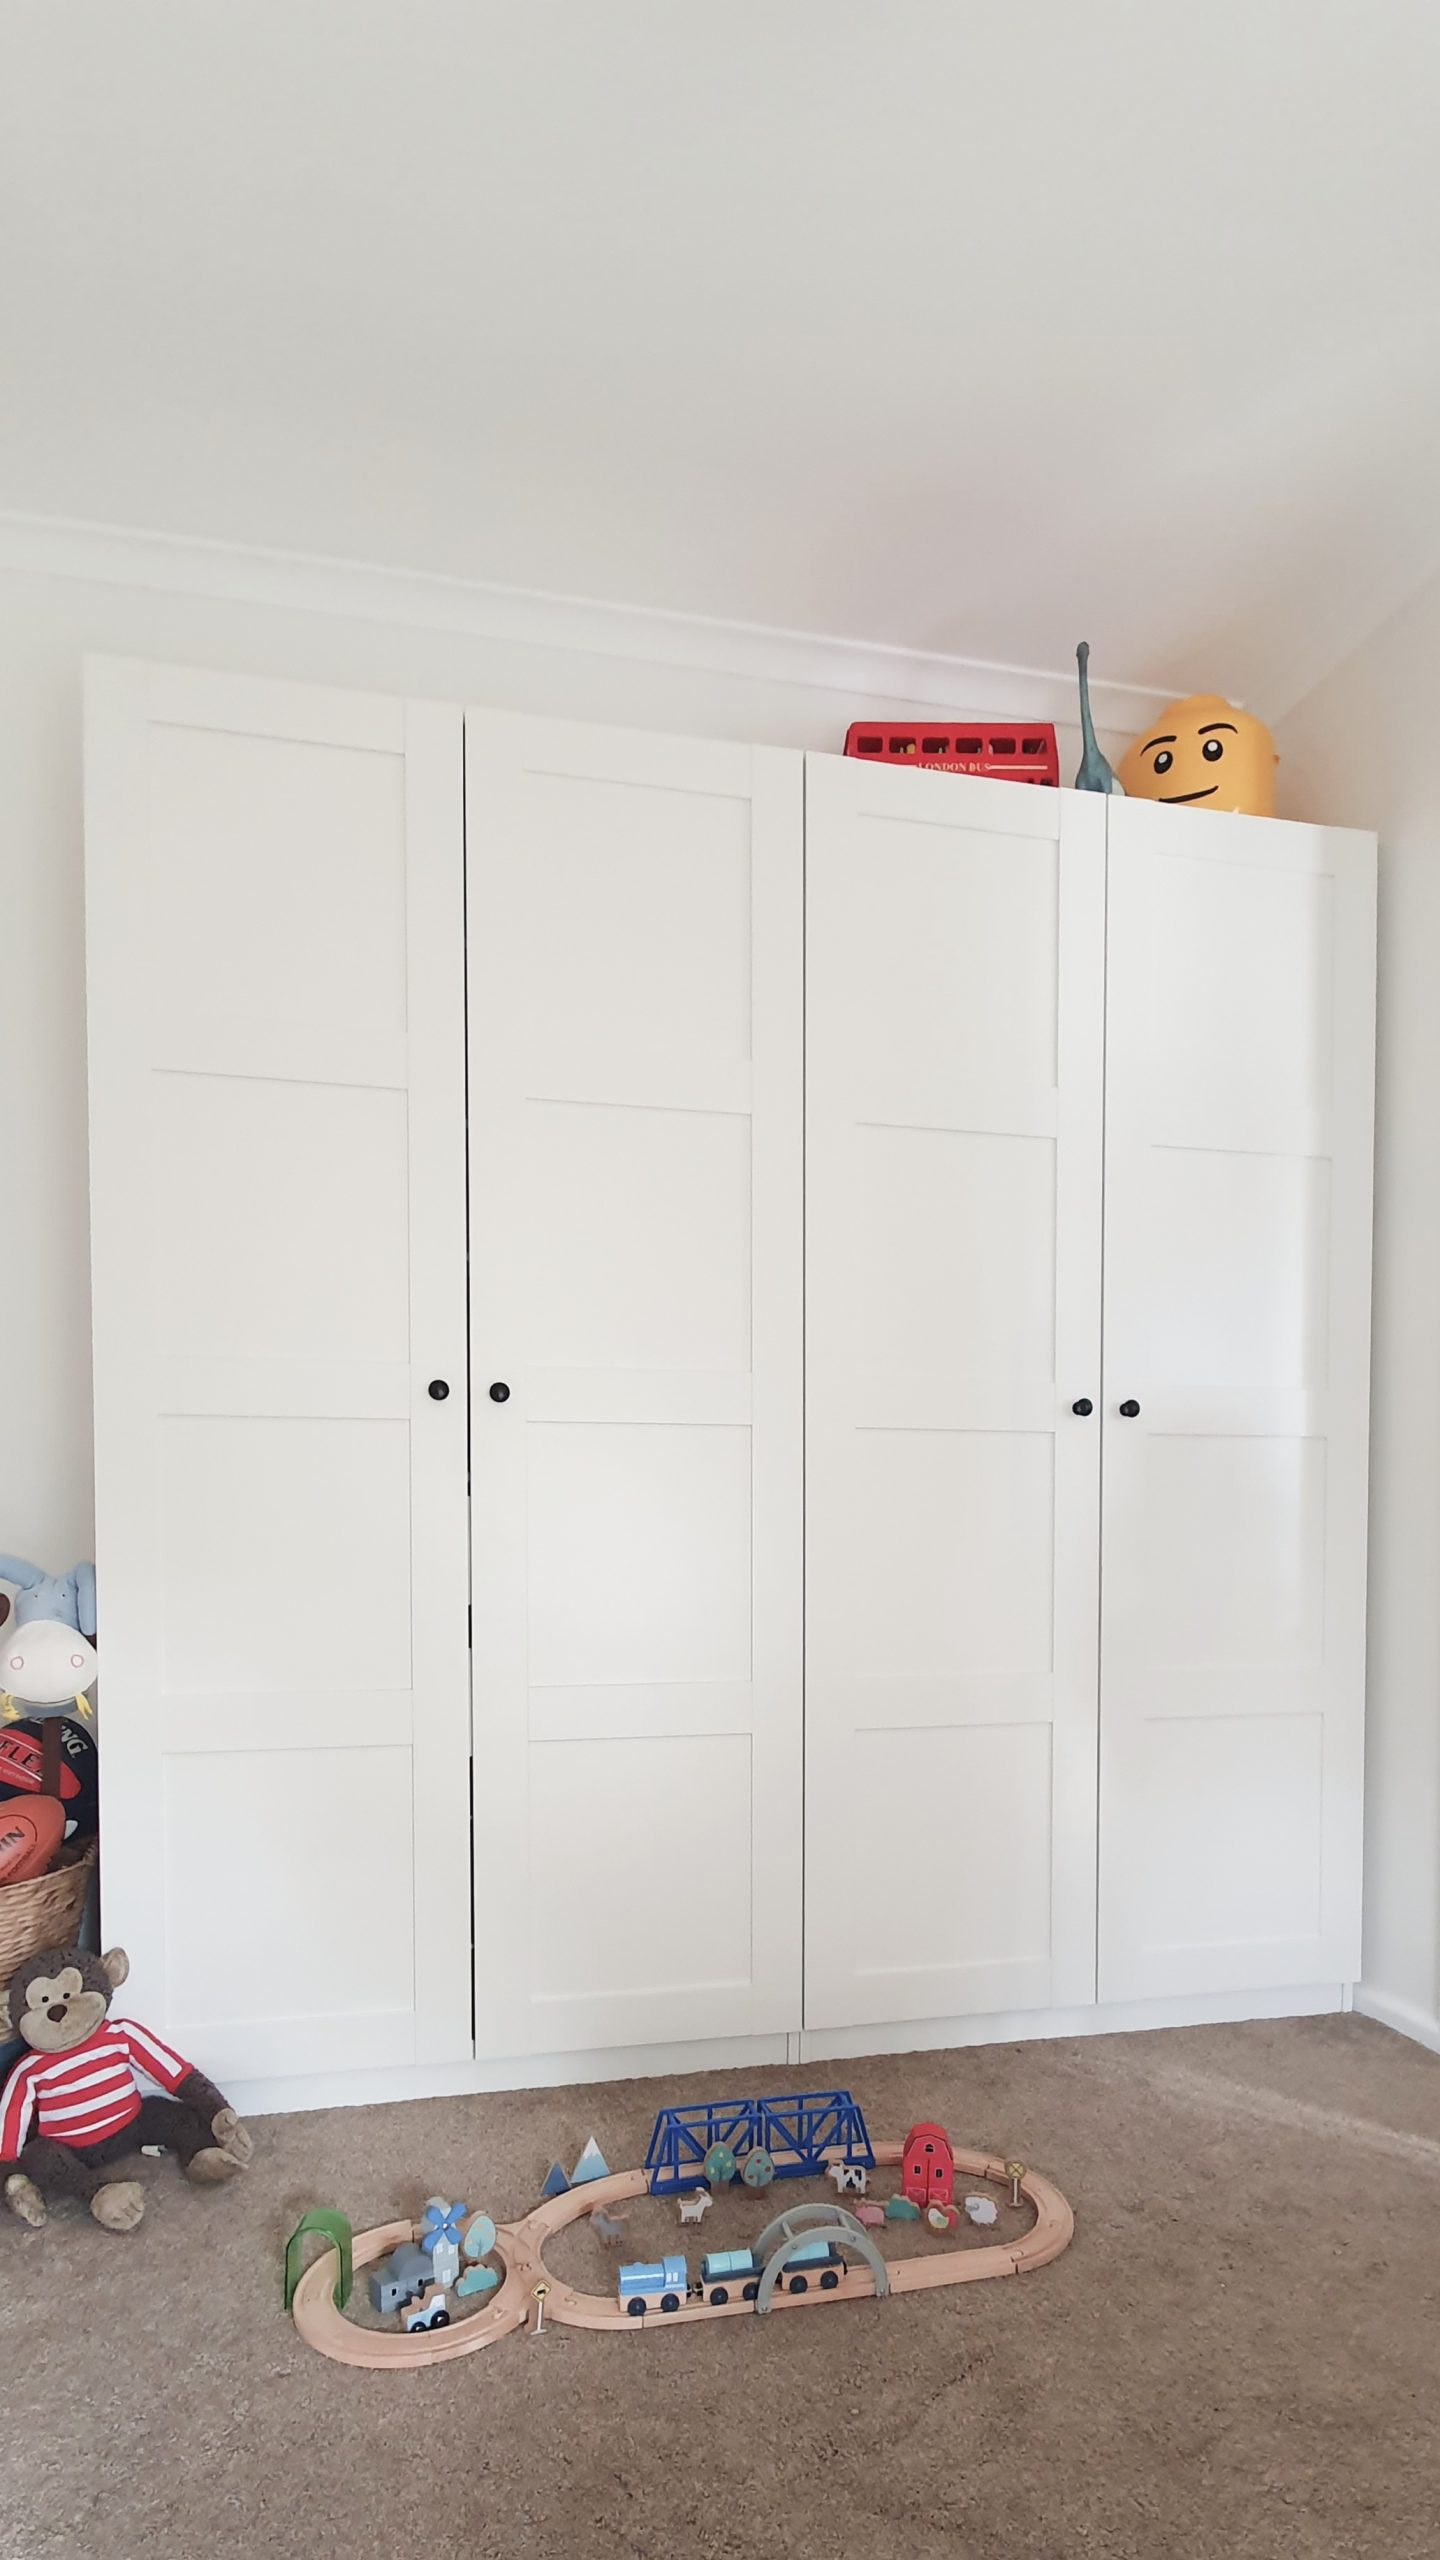 Our Little Playroom  -  Pax wardrobe toy storage